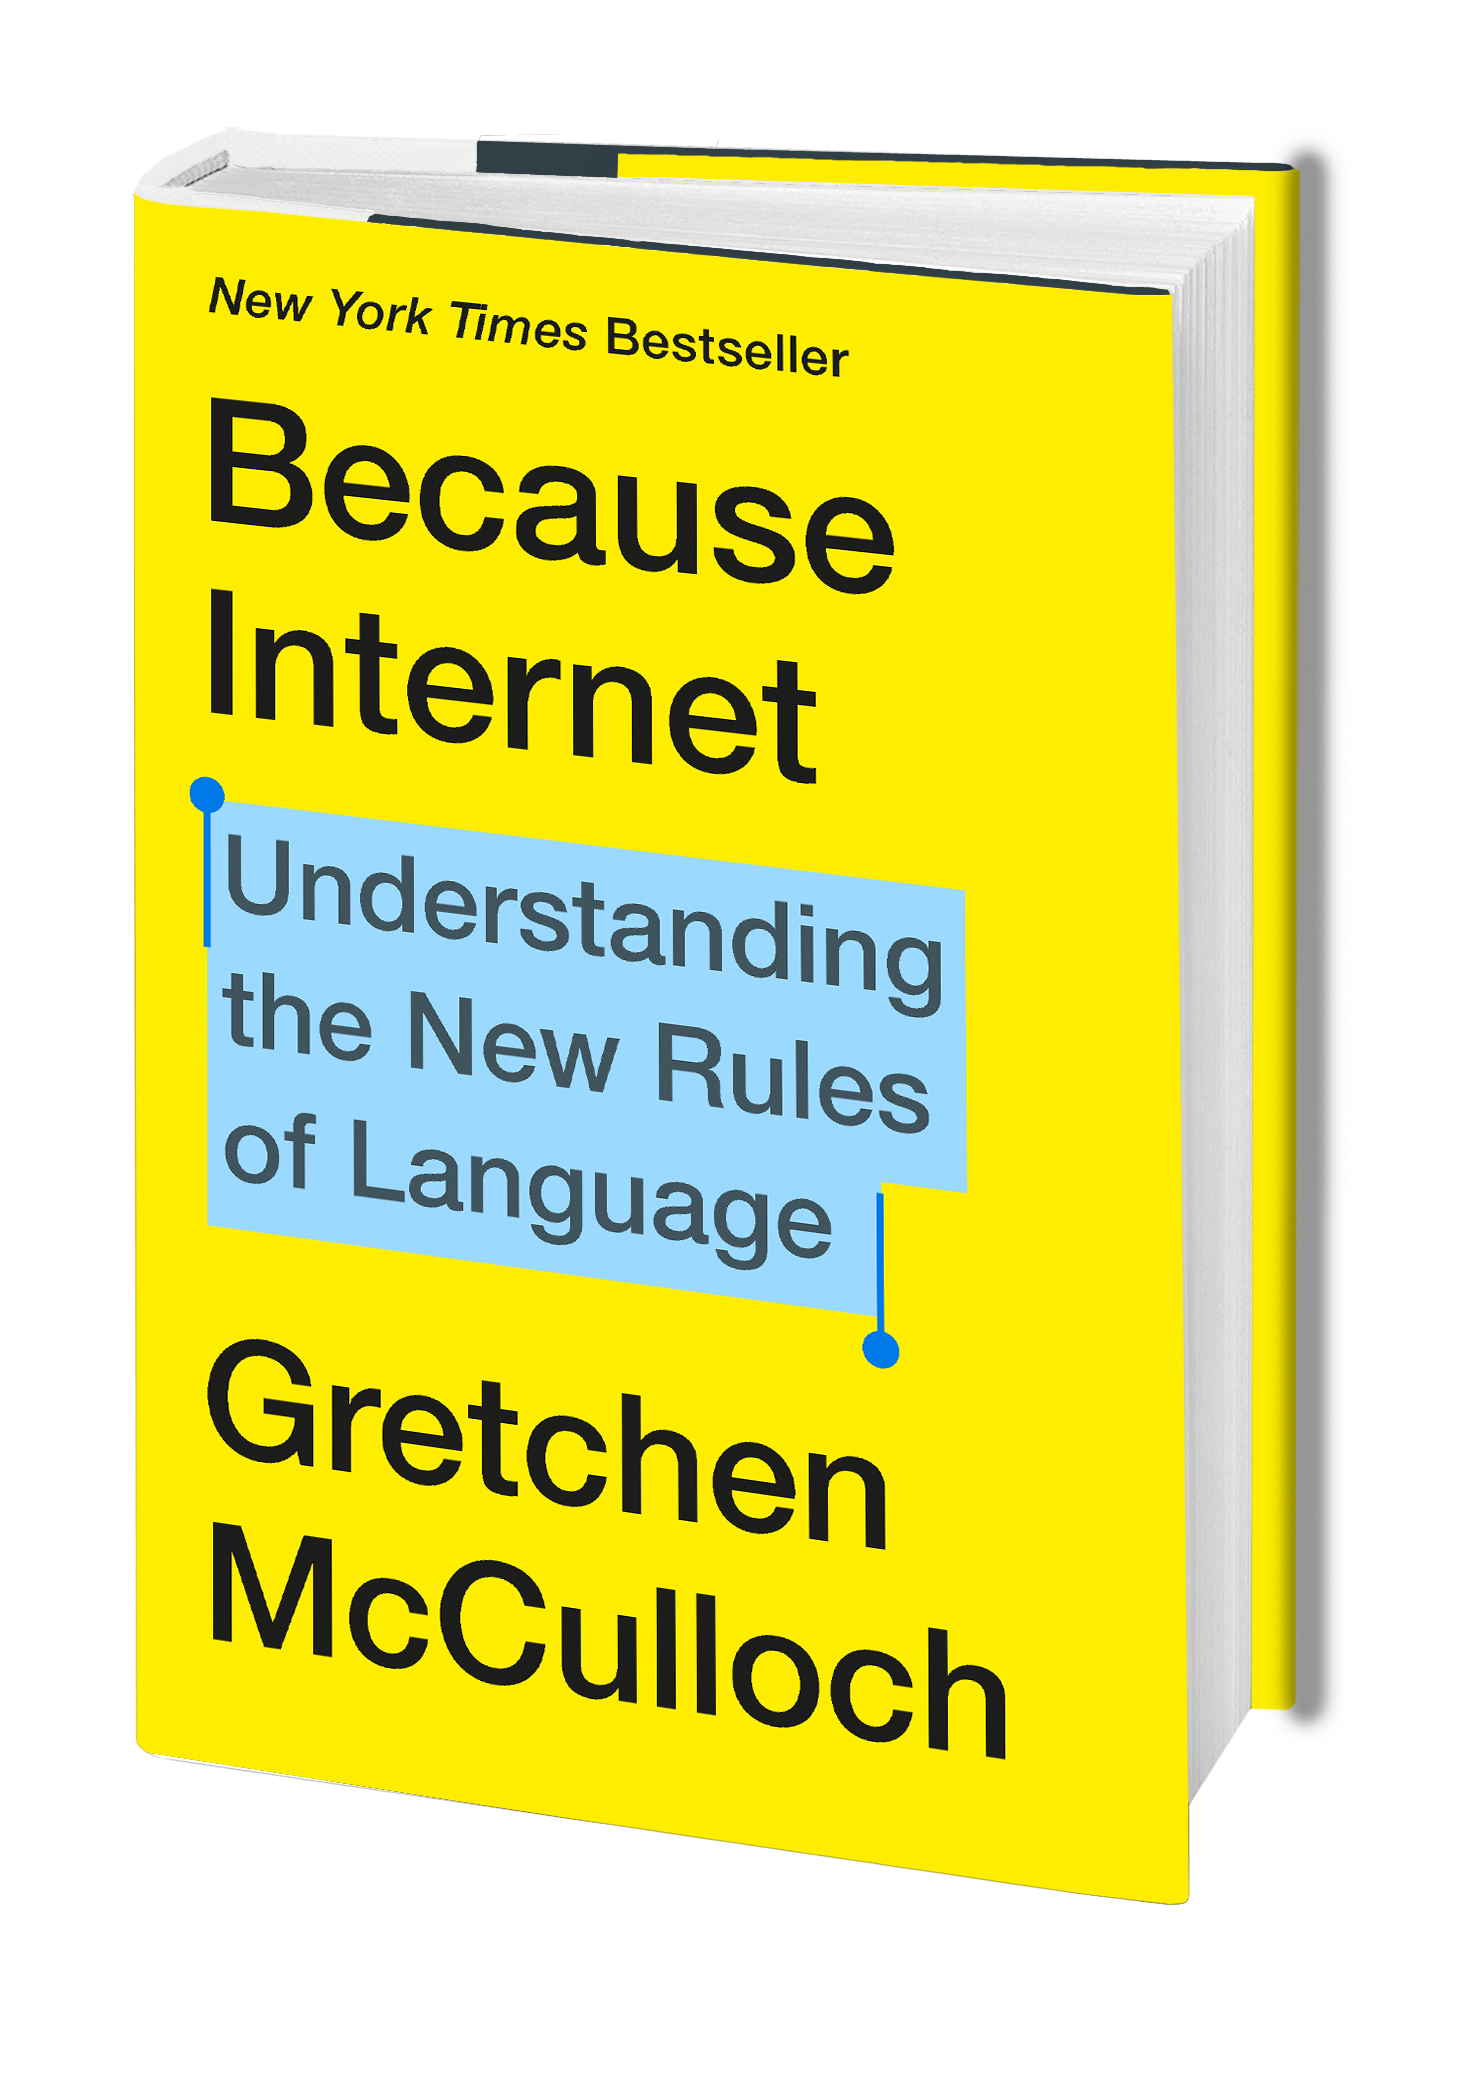 Because Internet: Understanding the New Rules of Language (New York Times bestseller)